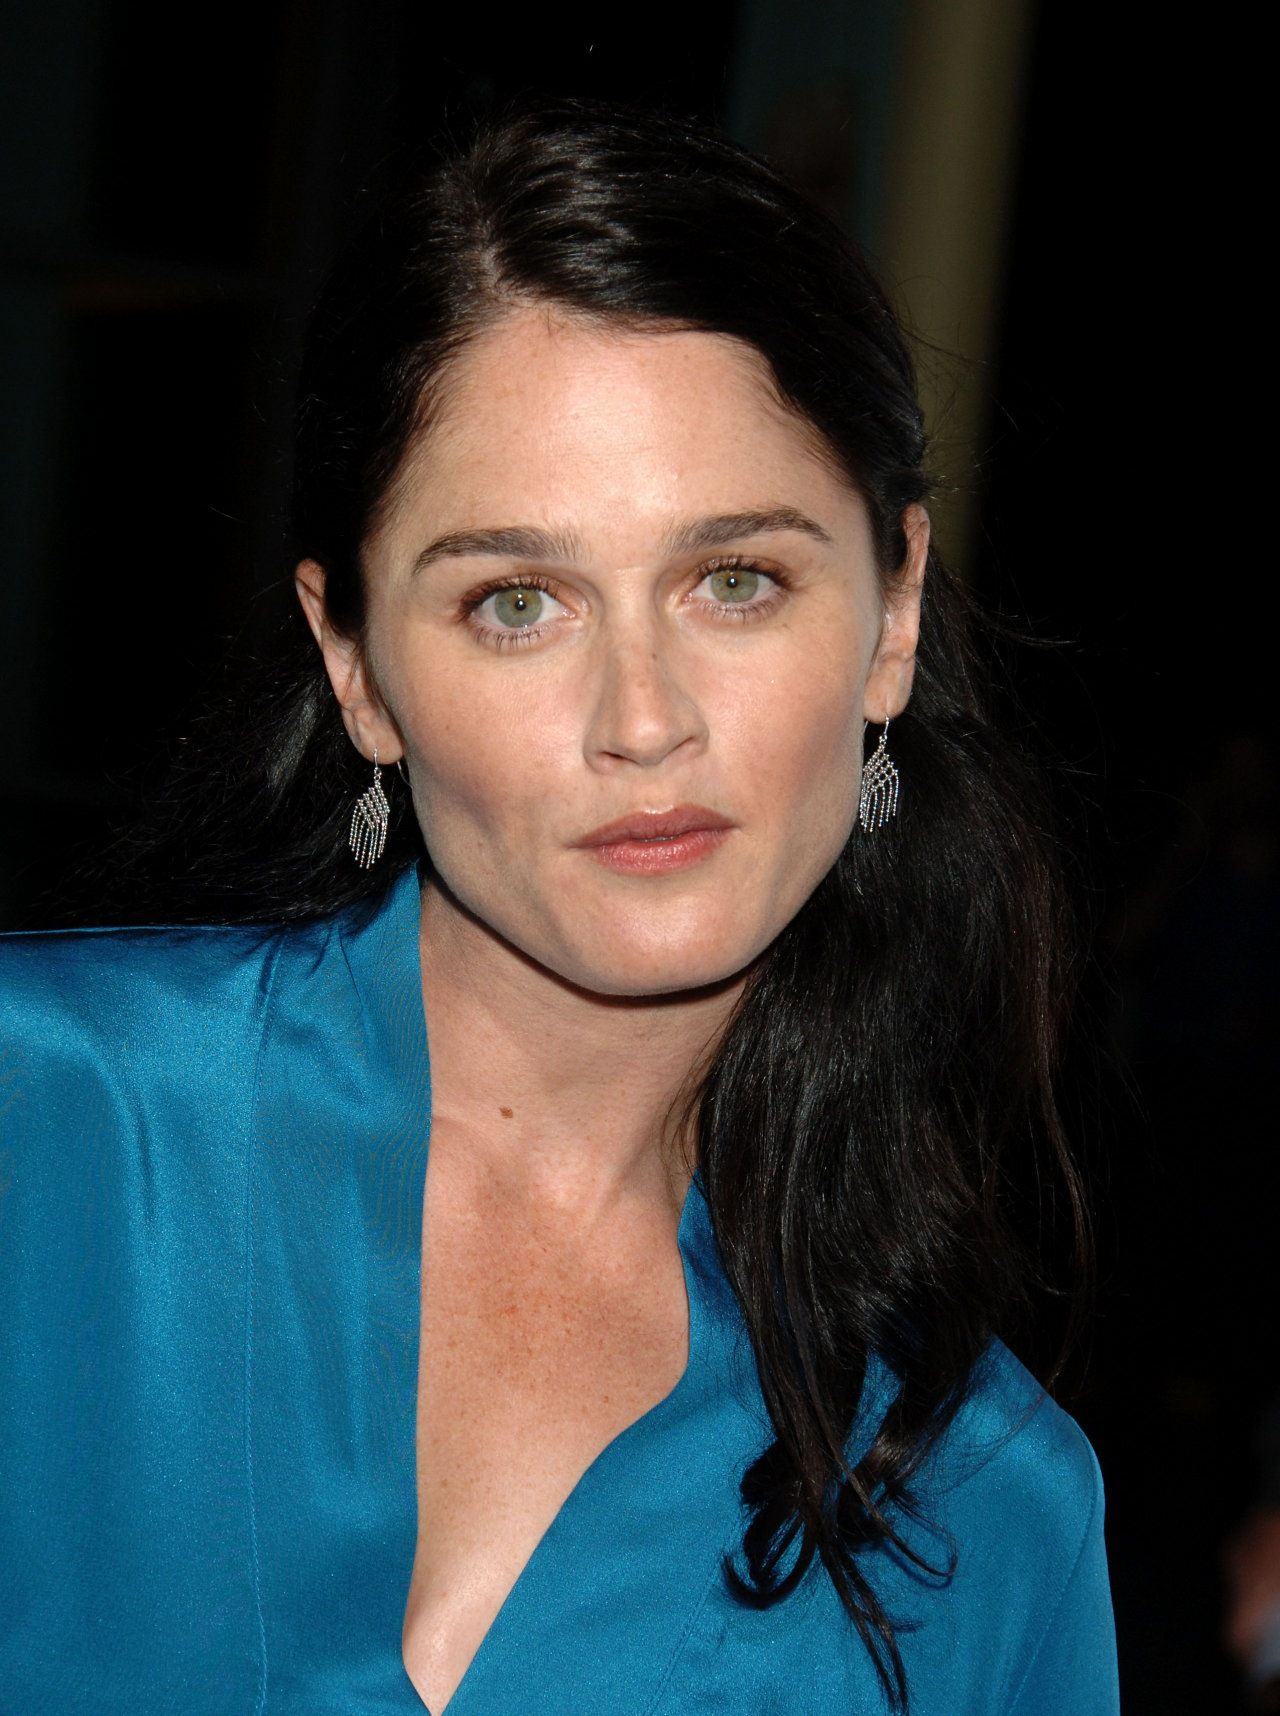 Selfie Robin Tunney naked (24 photo), Topless, Sideboobs, Boobs, swimsuit 2006